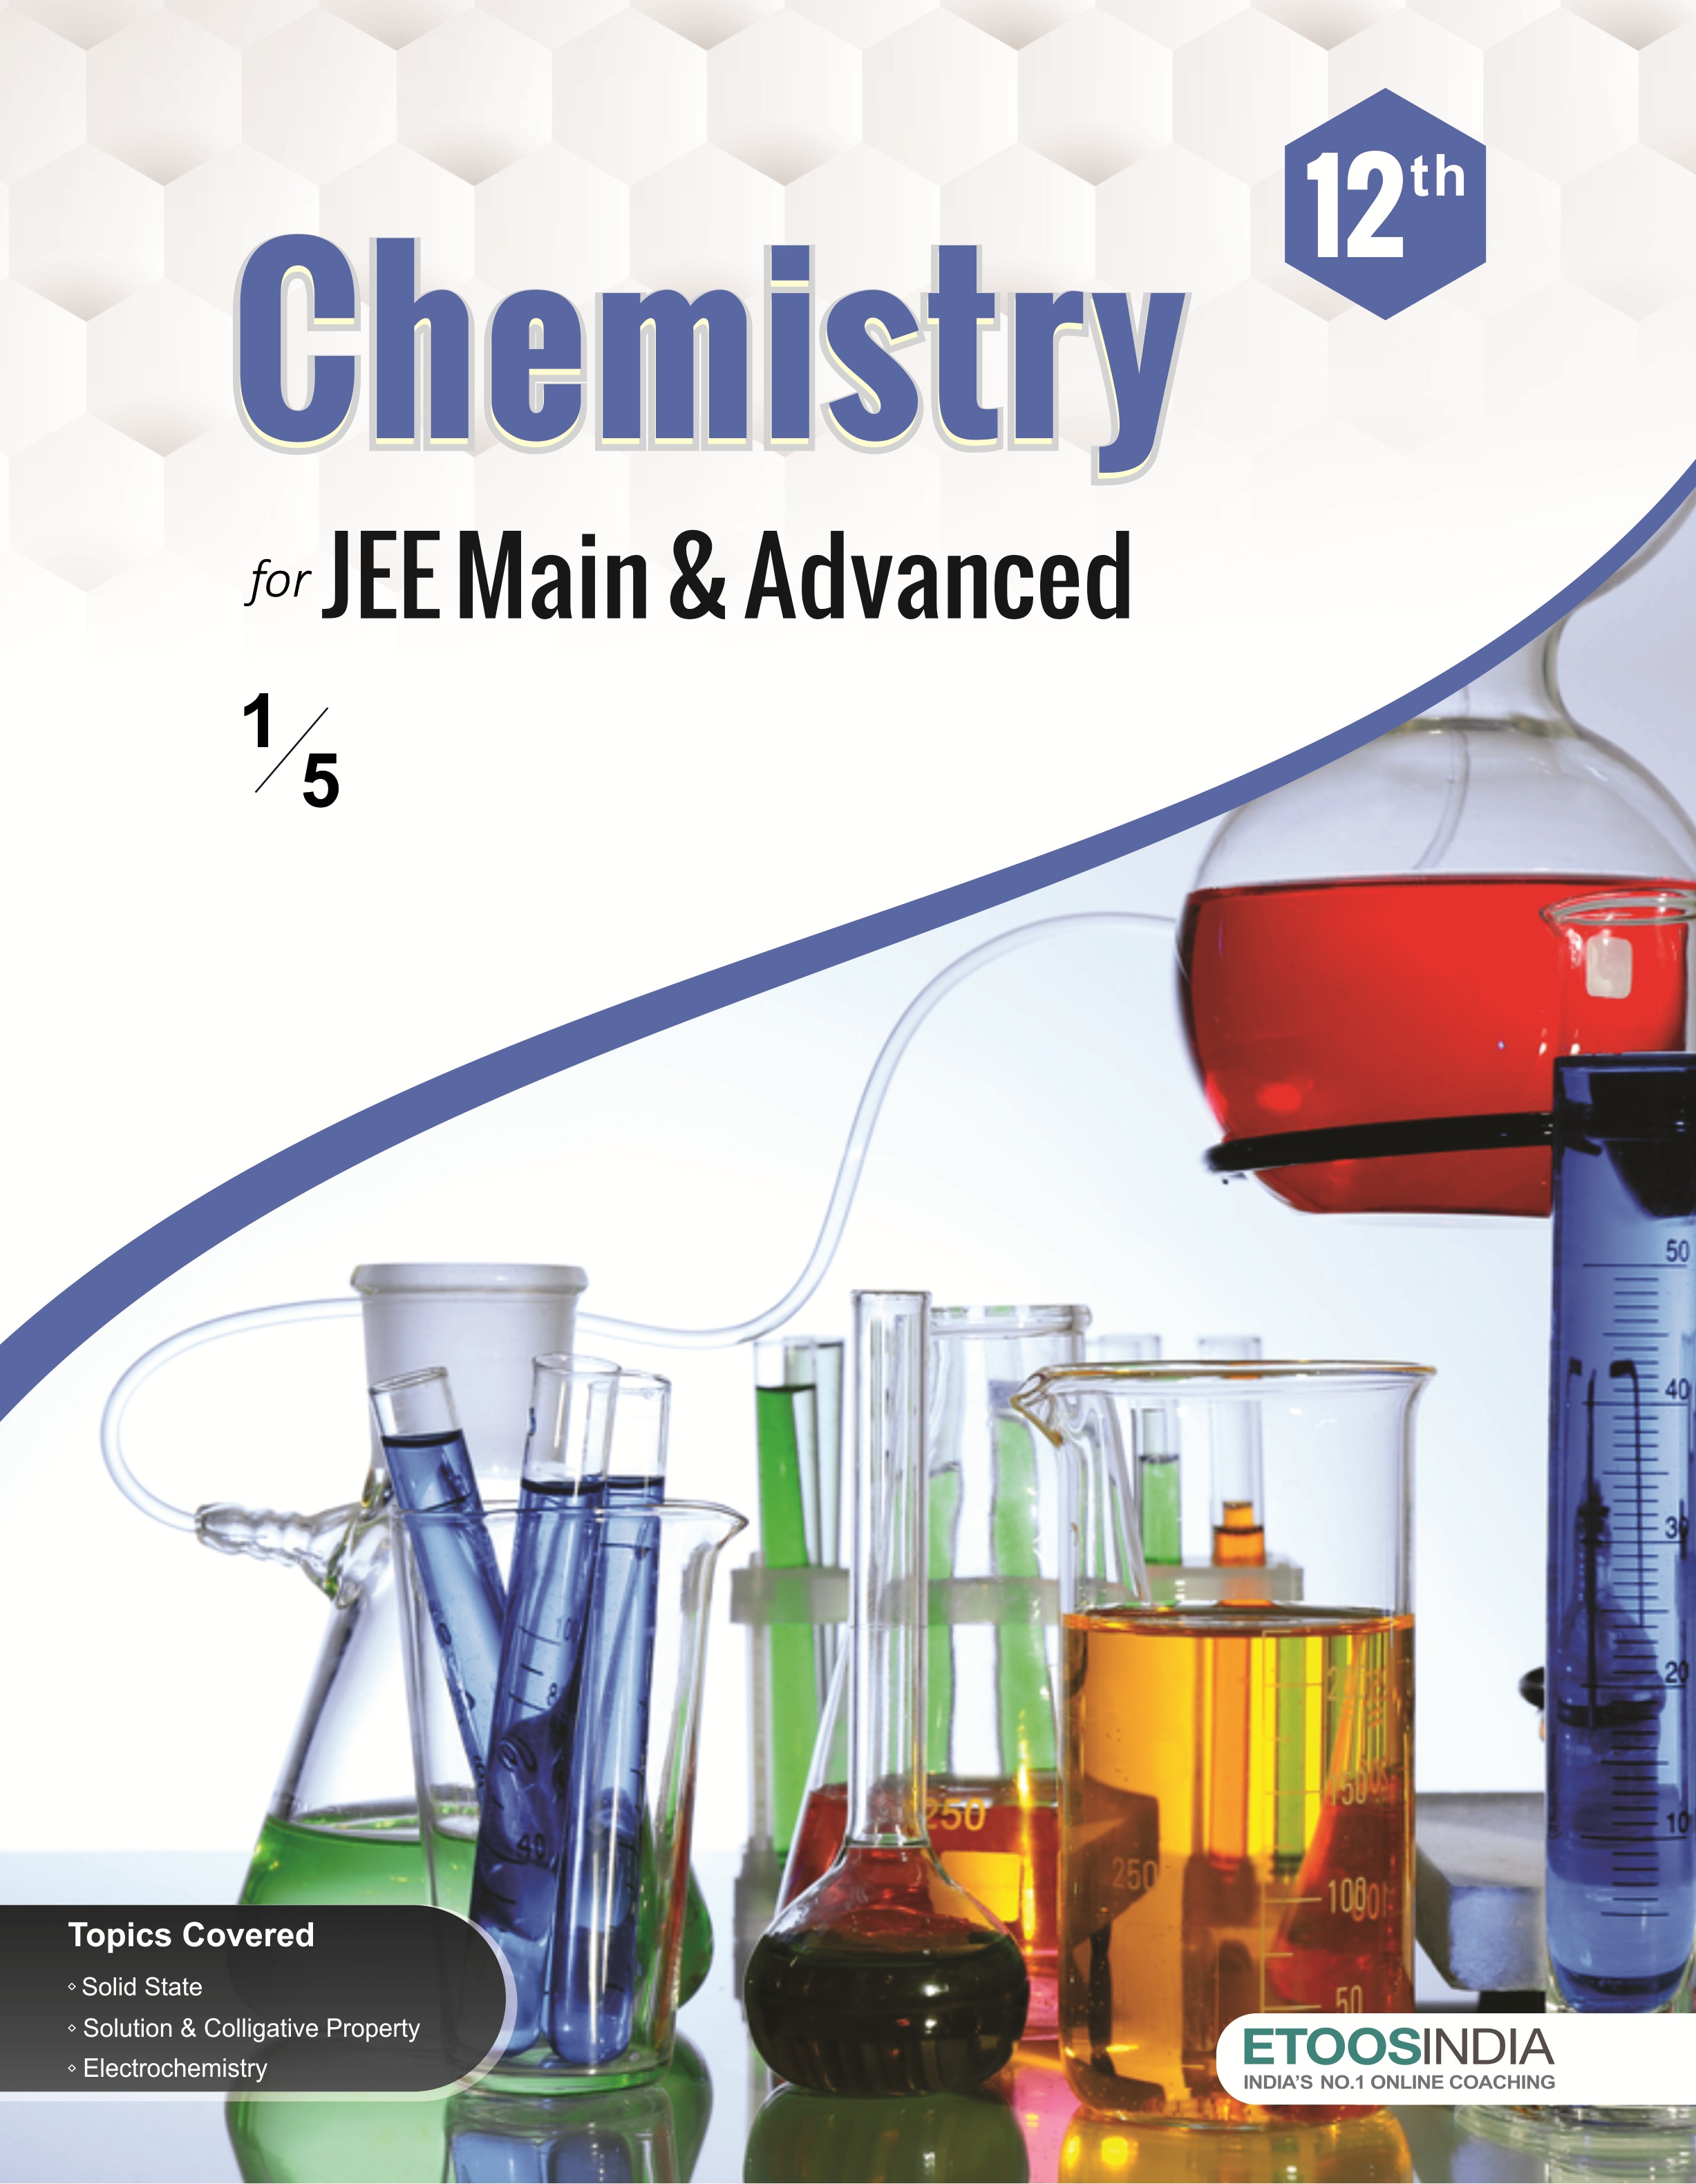 ETOOS Comprehensive Chemistry Study Material for JEE Main